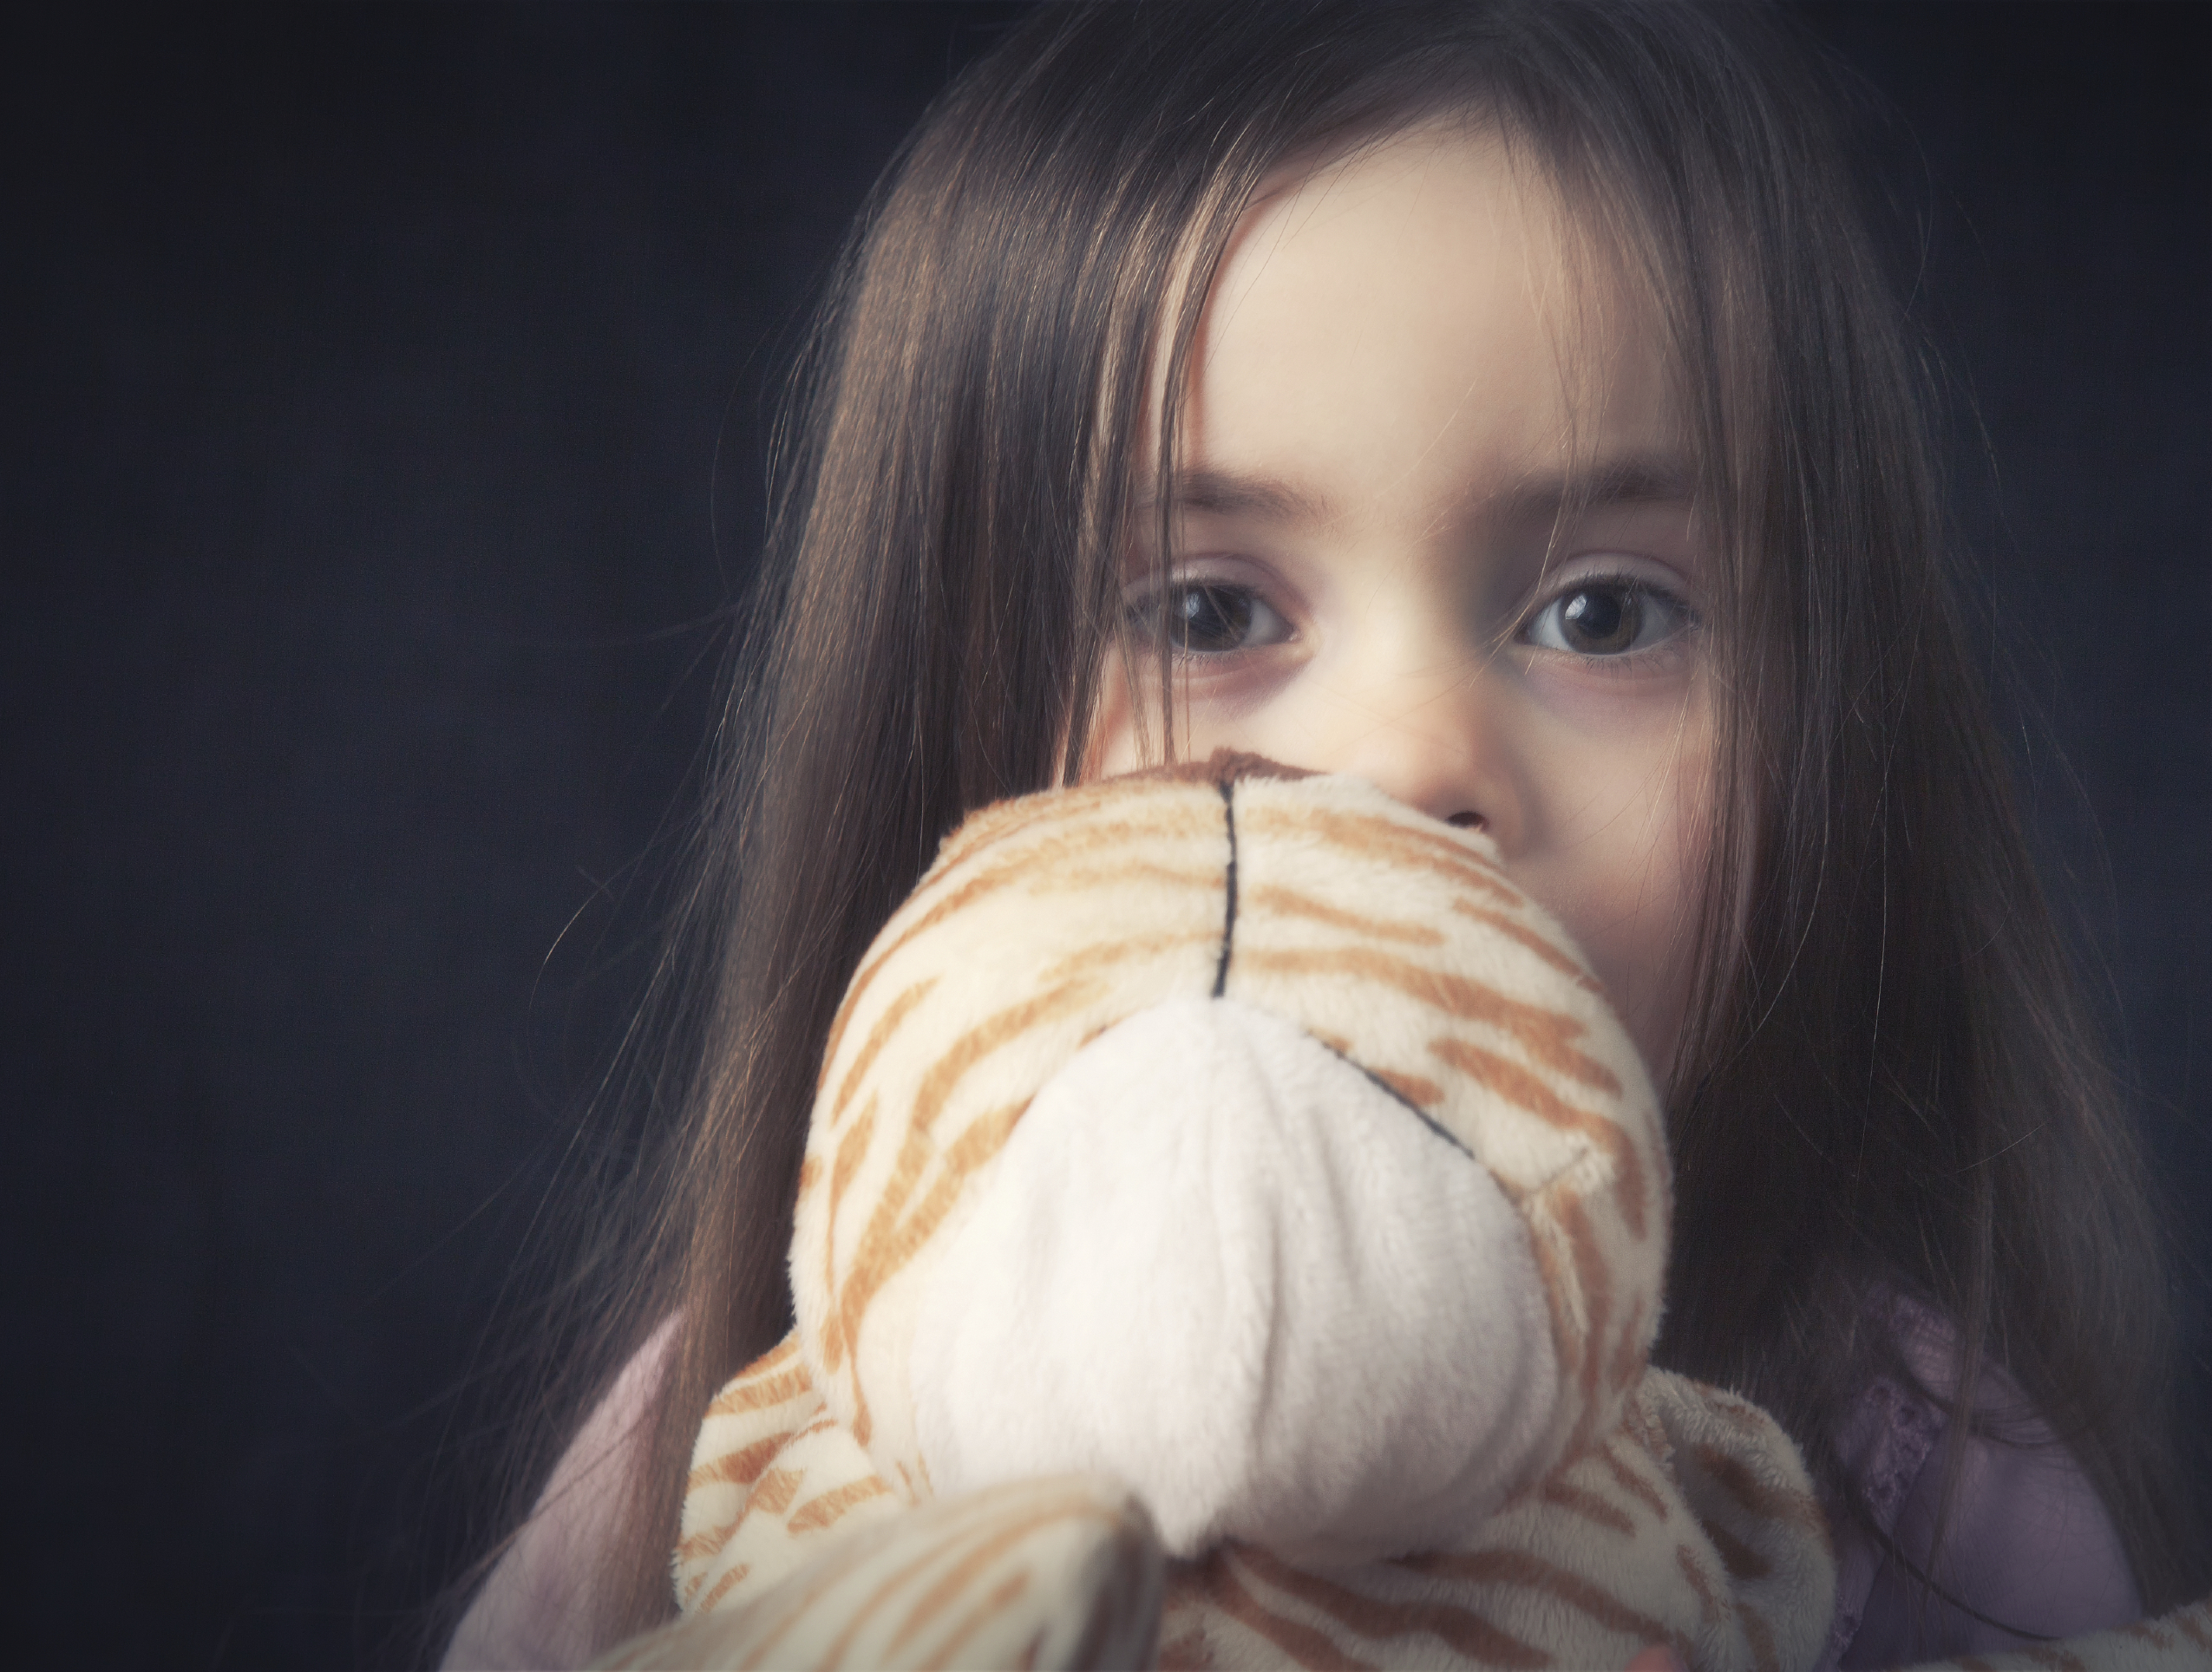 anxious little girl with stuffed animal